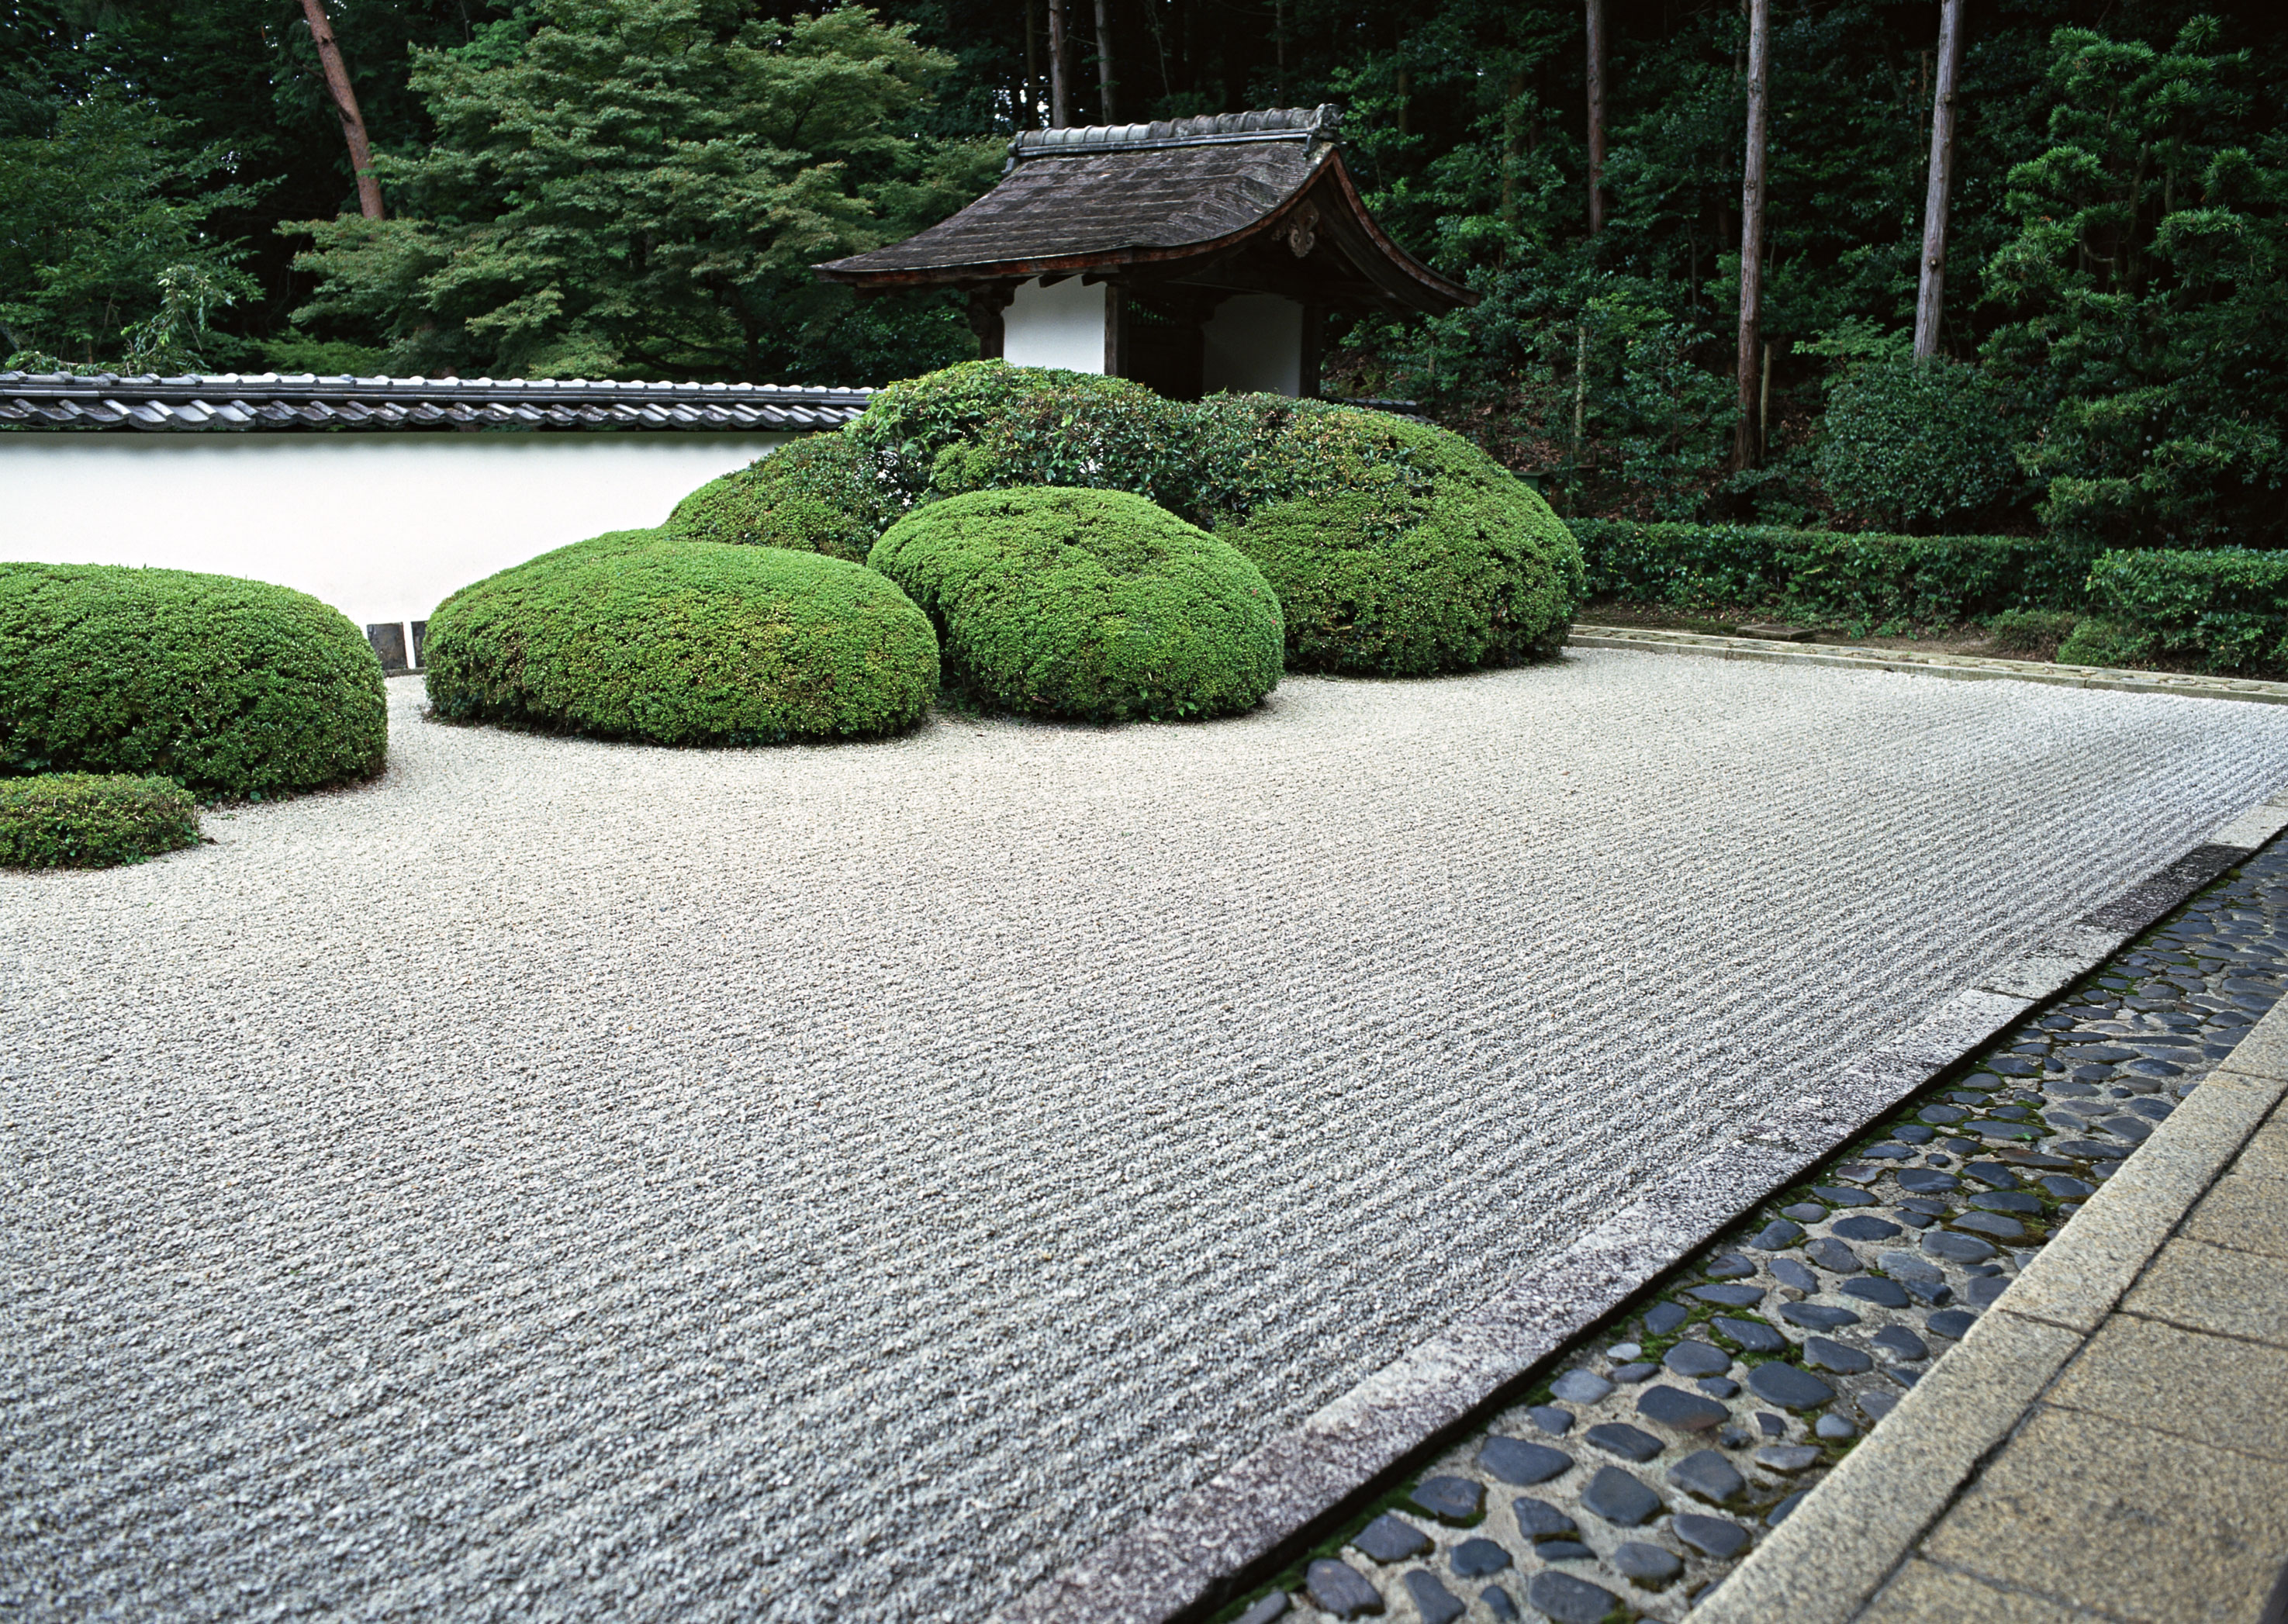 Why do we love japanese garden design it 39 s all about the for Japanese meditation garden design